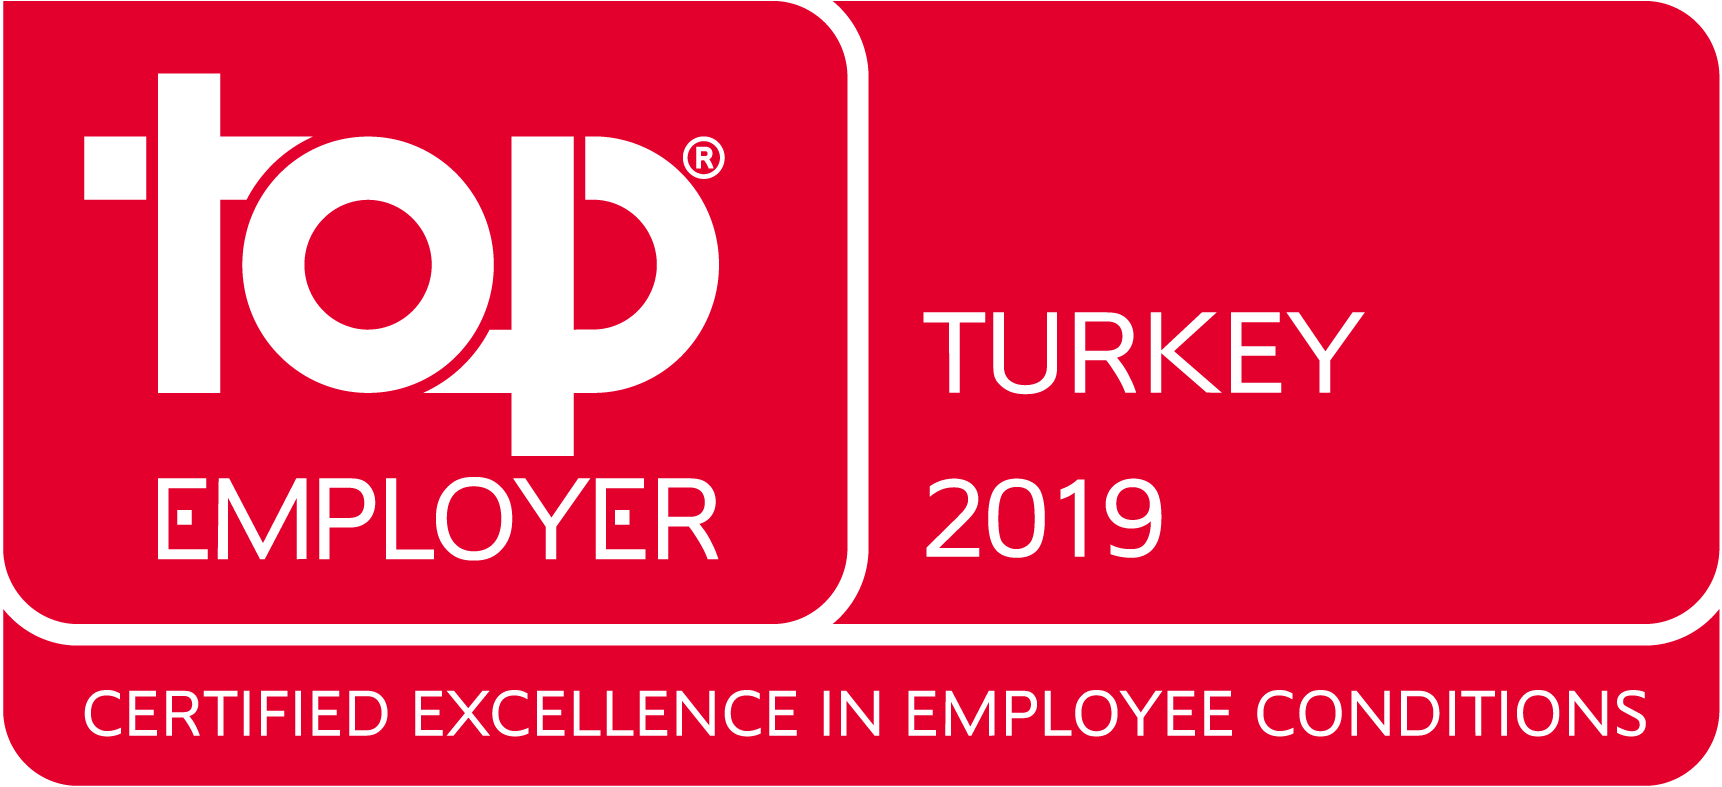 Top_Employer_Turkey_English_2019